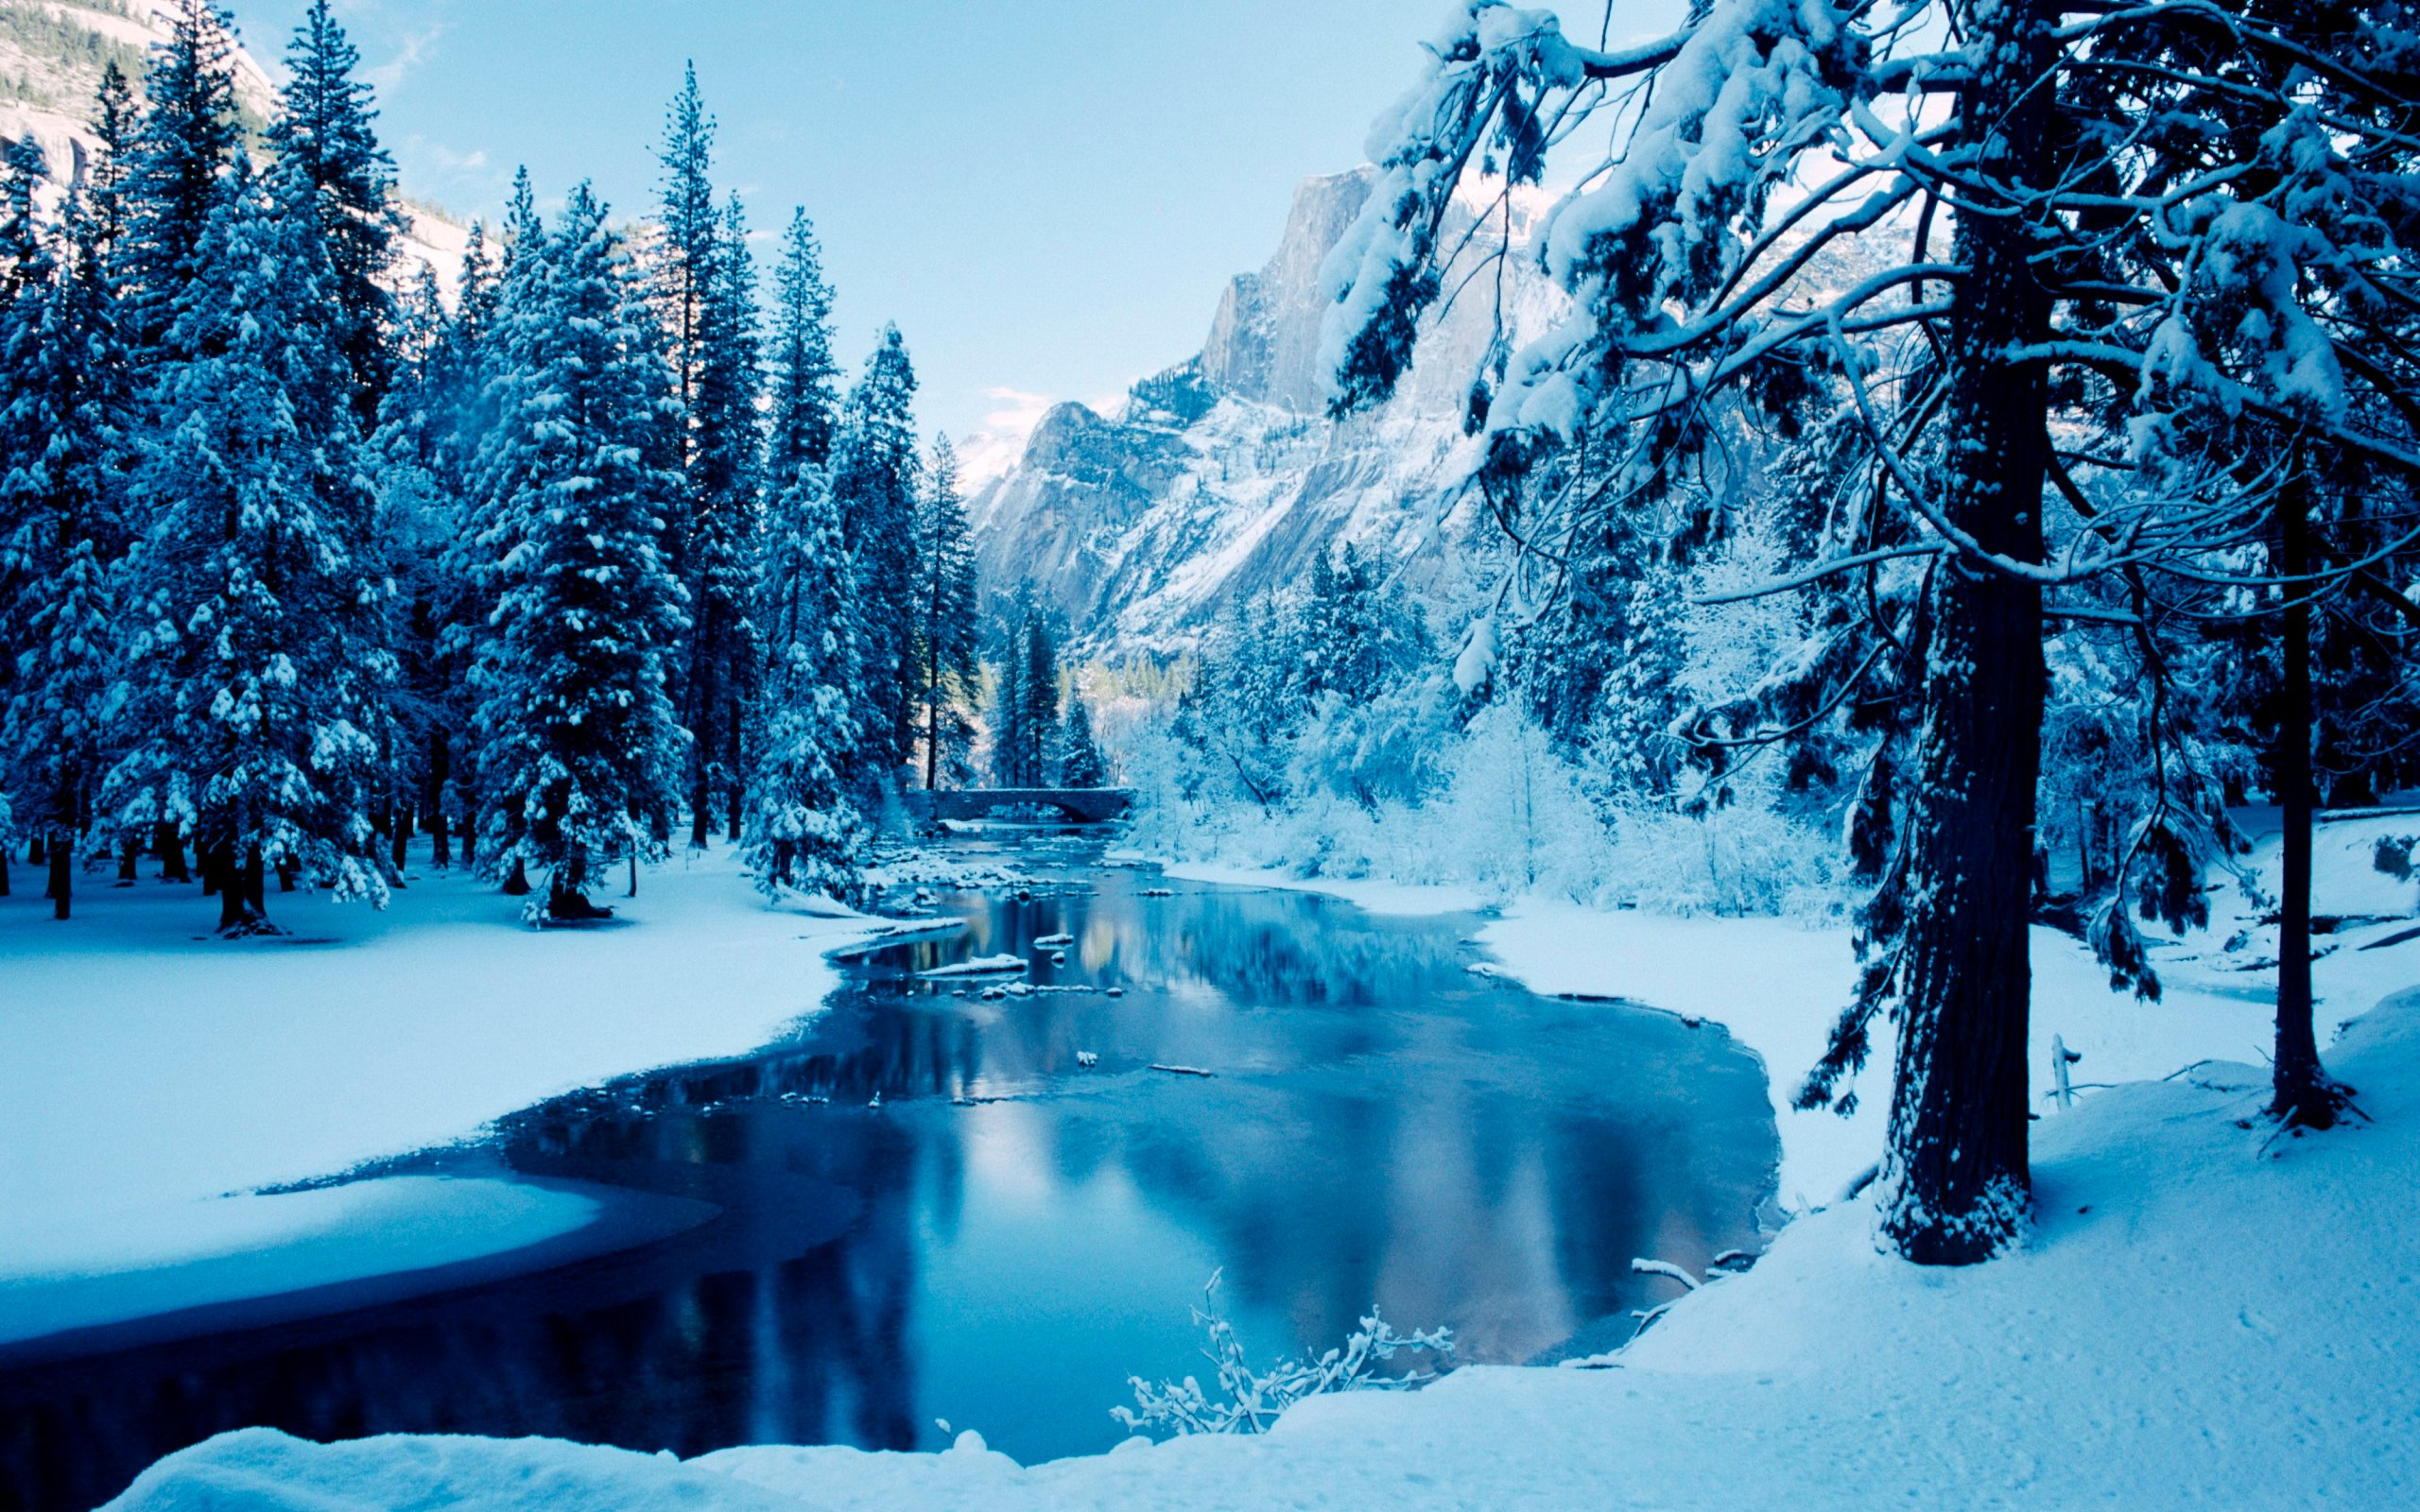 Winter Wallpaper Widescreen wallpaper Winter Wallpaper Widescreen hd 2560x1600